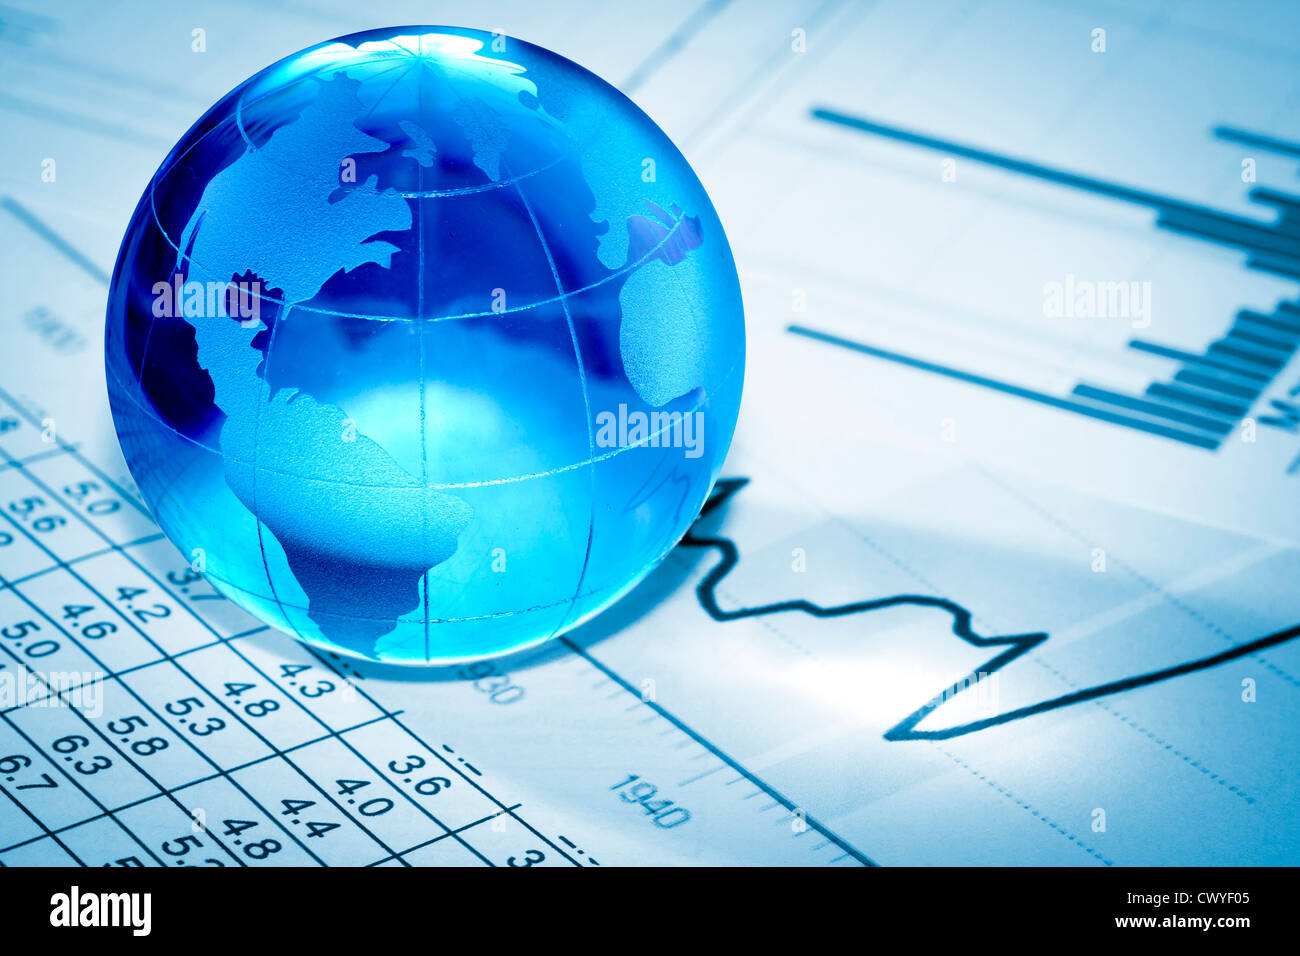 Globe showing North America and resting on financial papers - Stock Image